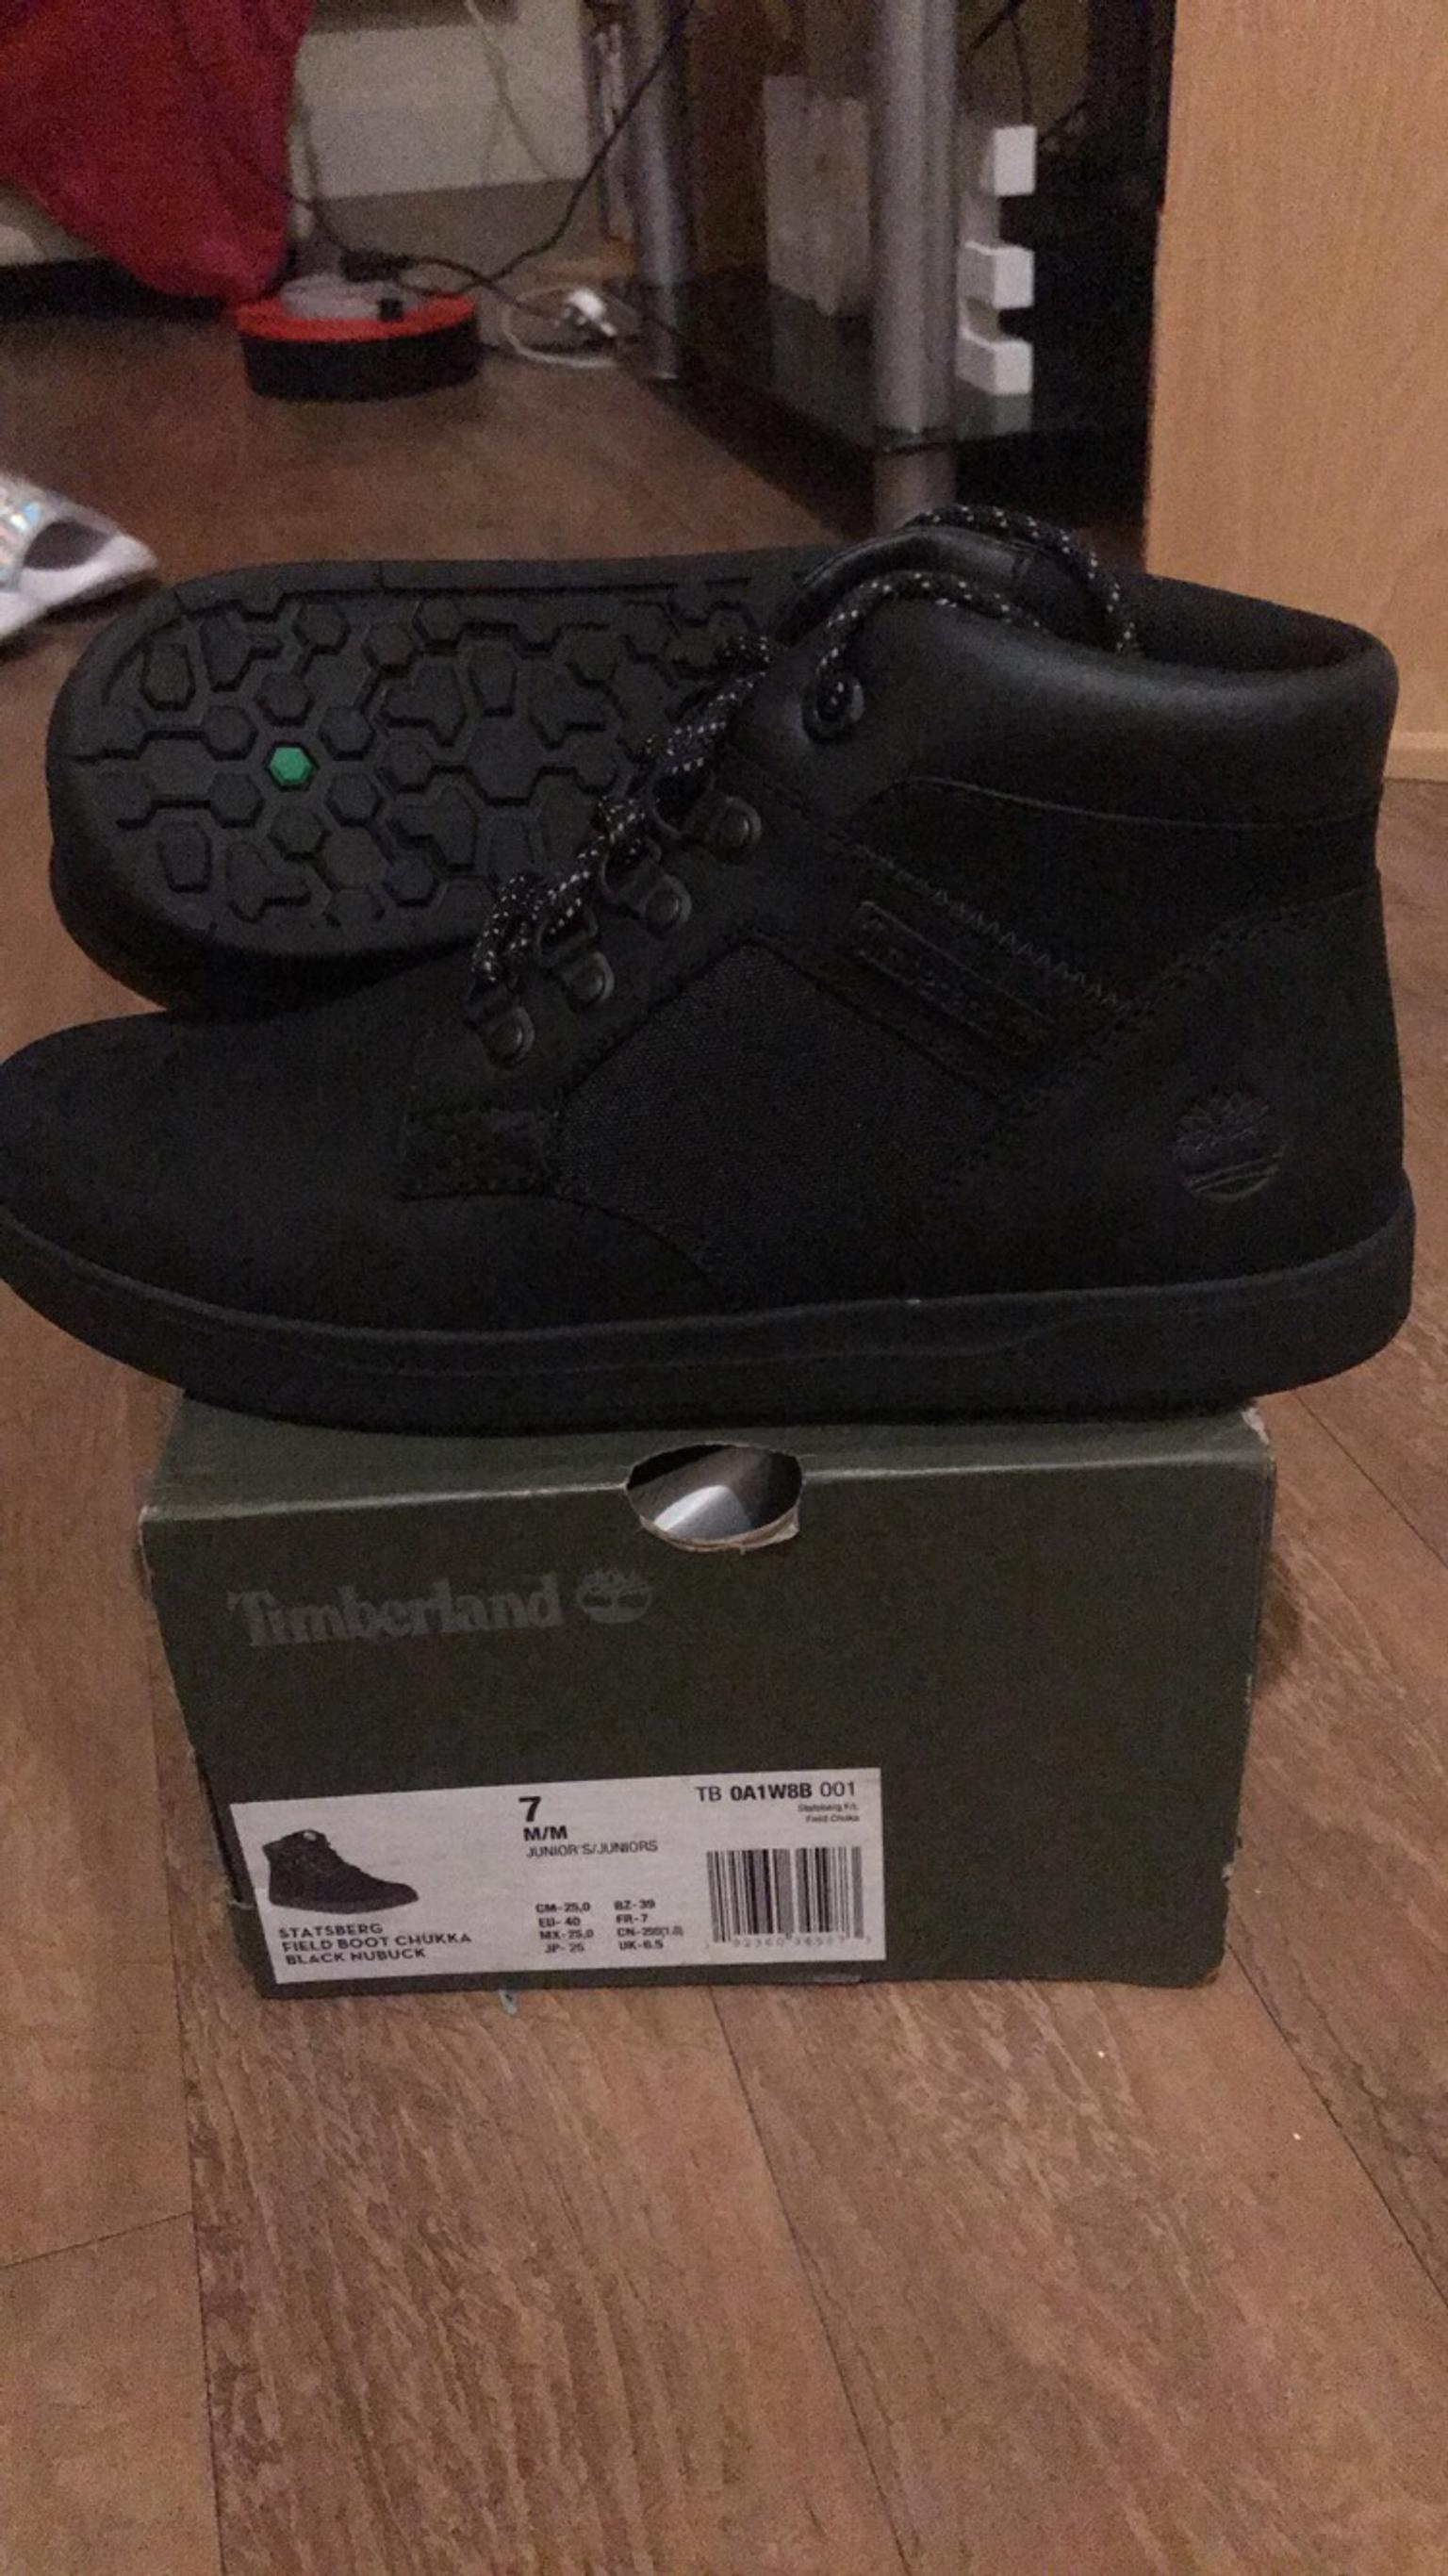 solar Psicologicamente cicatriz  6.5 black timberlands brand new boxed in LE1 Leicester for £35.00 for sale  | Shpock